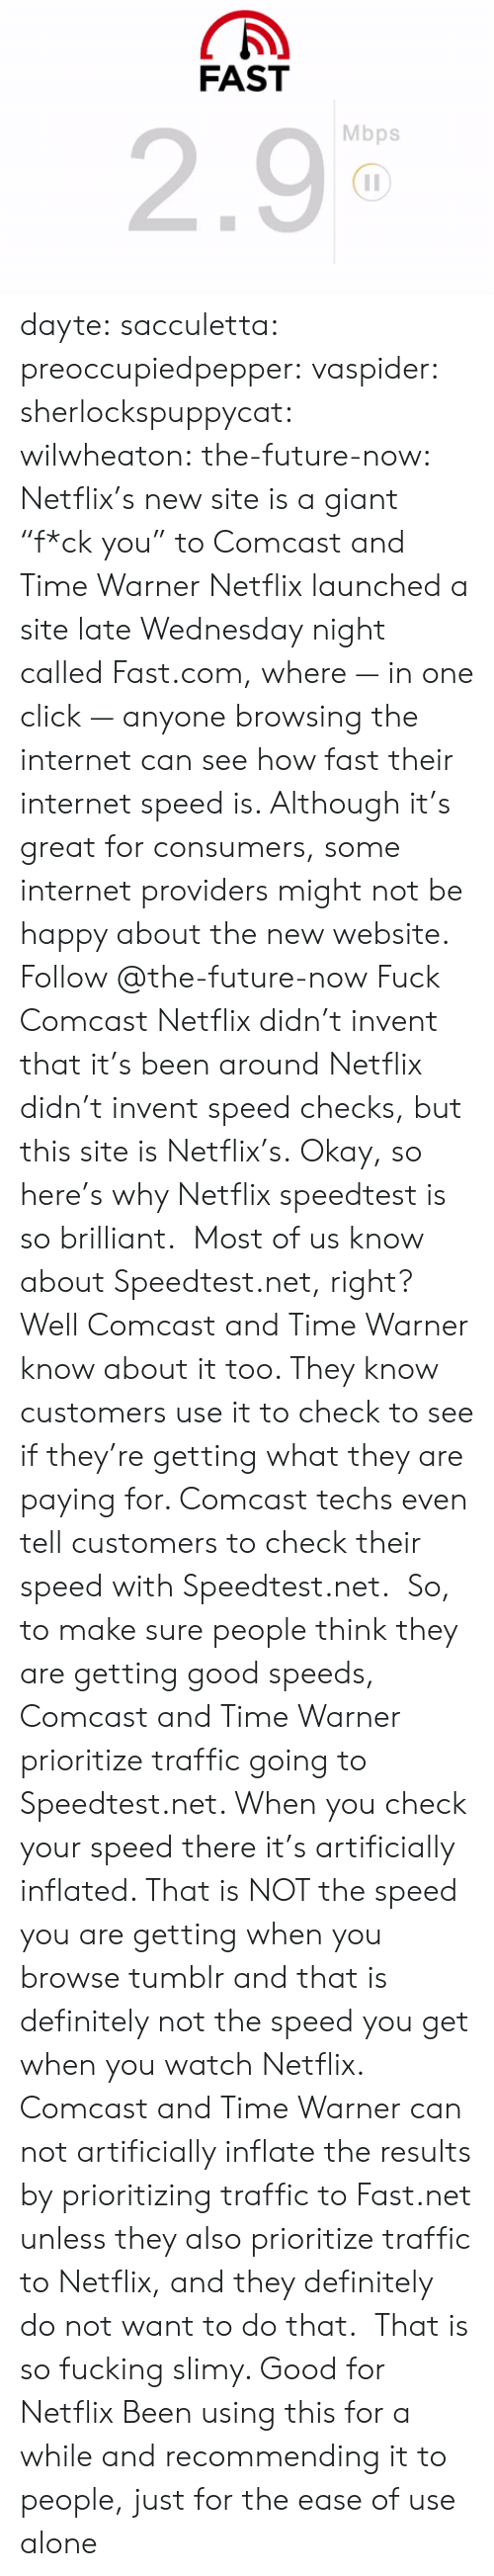 "Inflated: FAST  2.9  Mbps dayte: sacculetta:  preoccupiedpepper:  vaspider:  sherlockspuppycat:  wilwheaton:  the-future-now:  Netflix's new site is a giant ""f*ck you"" to Comcast and Time Warner Netflix launched a site late Wednesday night called Fast.com, where — in one click — anyone browsing the internet can see how fast their internet speed is. Although it's great for consumers, some internet providers might not be happy about the new website. Follow @the-future-now​  Fuck Comcast  Netflix didn't invent that it's been around  Netflix didn't invent speed checks, but this site is Netflix's.  Okay, so here's why Netflix speedtest is so brilliant.  Most of us know about Speedtest.net, right? Well Comcast and Time Warner know about it too. They know customers use it to check to see if they're getting what they are paying for. Comcast techs even tell customers to check their speed with Speedtest.net.  So, to make sure people think they are getting good speeds, Comcast and Time Warner prioritize traffic going to Speedtest.net. When you check your speed there it's artificially inflated. That is NOT the speed you are getting when you browse tumblr and that is definitely not the speed you get when you watch Netflix.  Comcast and Time Warner can not artificially inflate the results by prioritizing traffic to Fast.net unless they also prioritize traffic to Netflix, and they definitely do not want to do that.   That is so fucking slimy. Good for Netflix   Been using this for a while and recommending it to people, just for the ease of use alone"